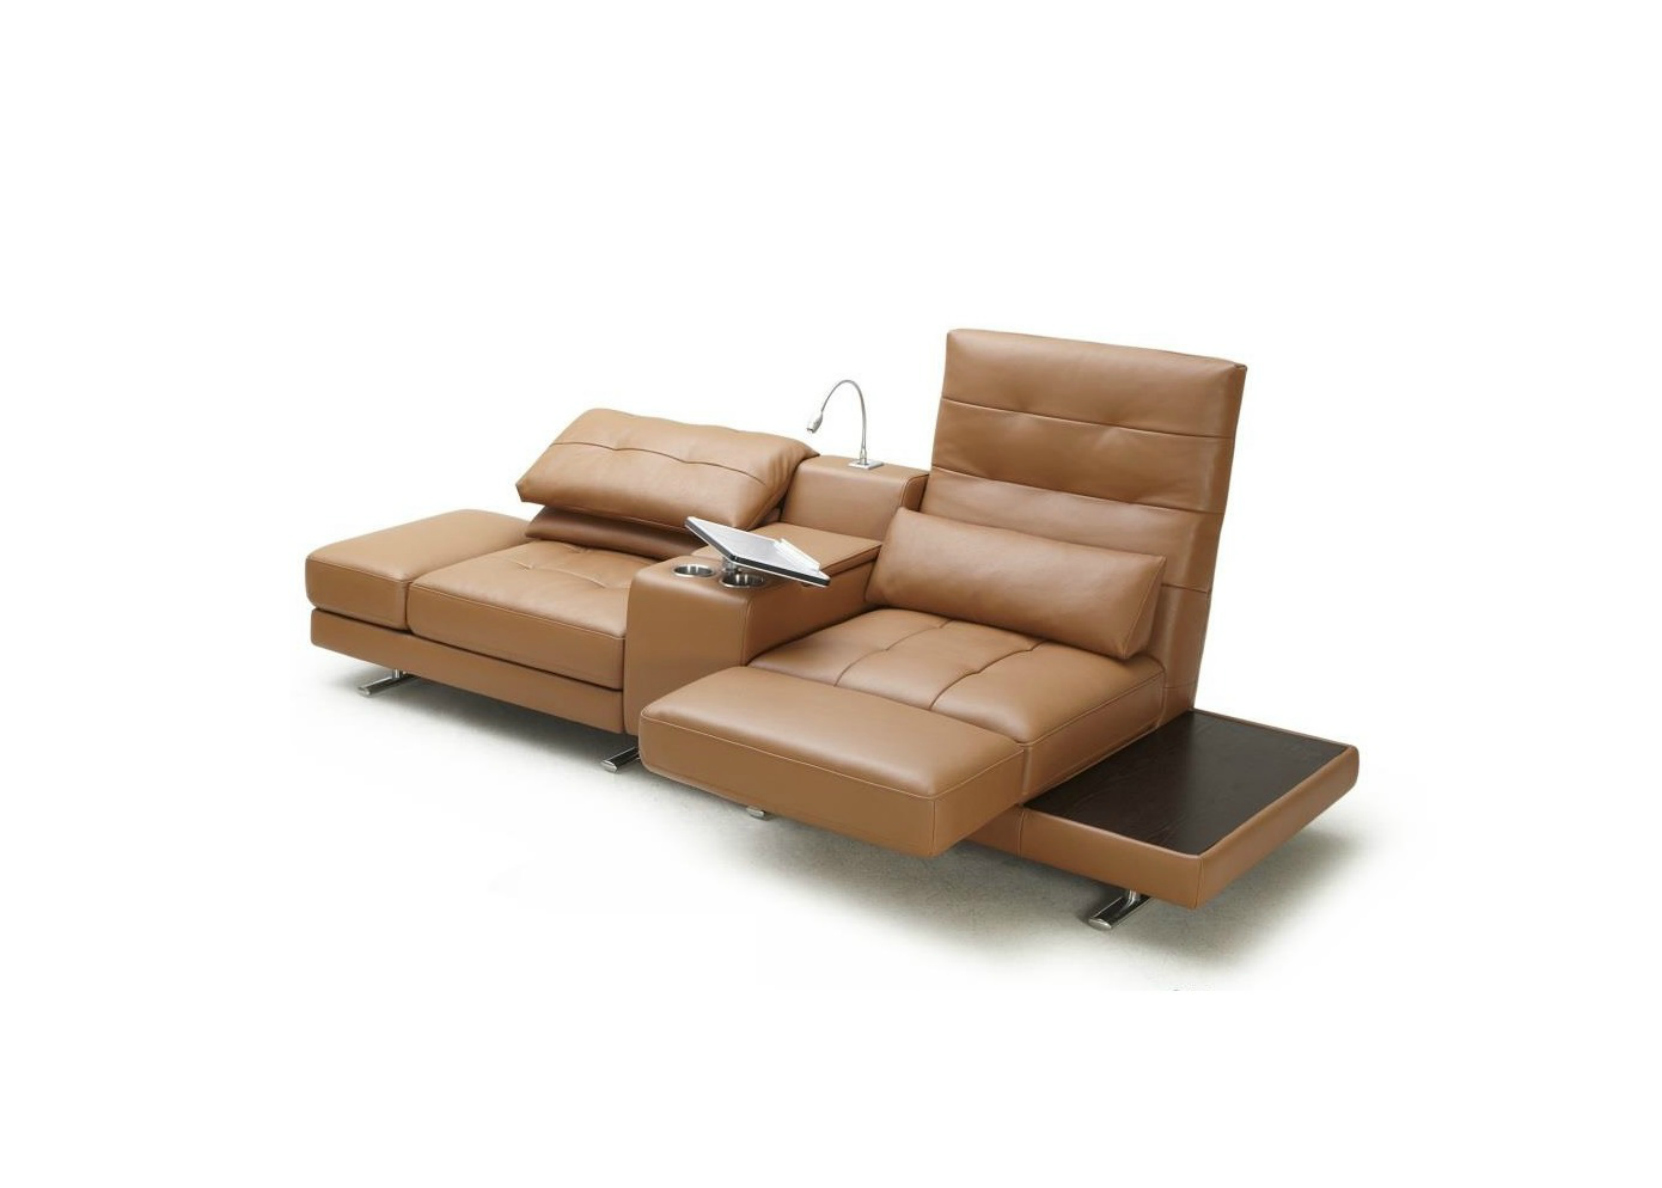 Lounge Sofa With Rotating Seats Amp Adjustable Armrests